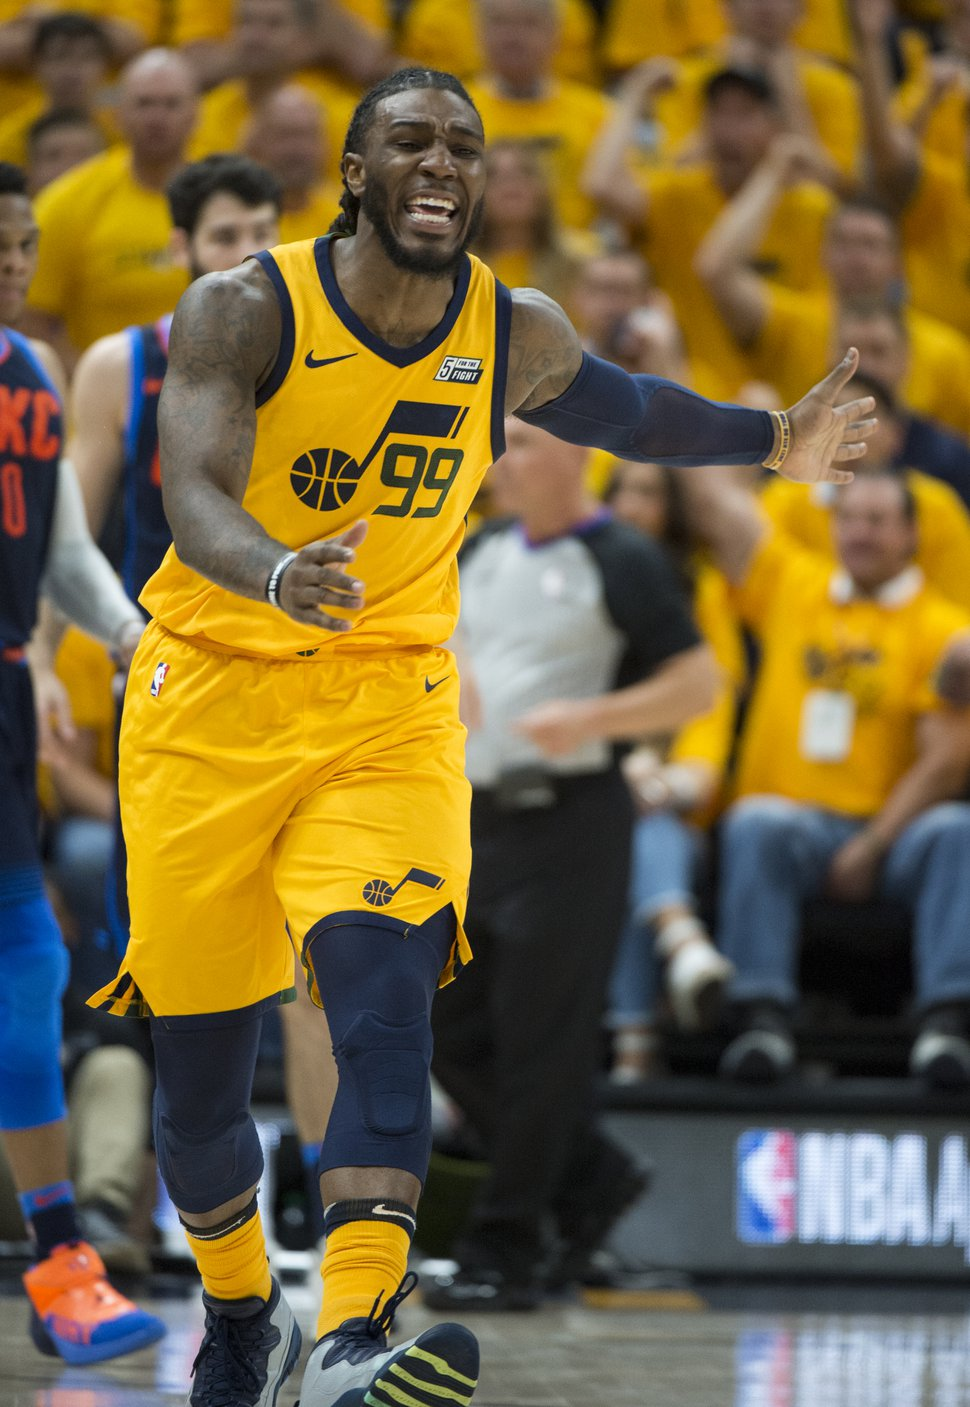 (Rick Egan | The Salt Lake Tribune) Utah Jazz forward Jae Crowder (99) reacts to a call by the official, in playoff action in game 6, between Utah Jazz and Oklahoma City Thunder in Salt Lake City, Friday, April 27, 2018.